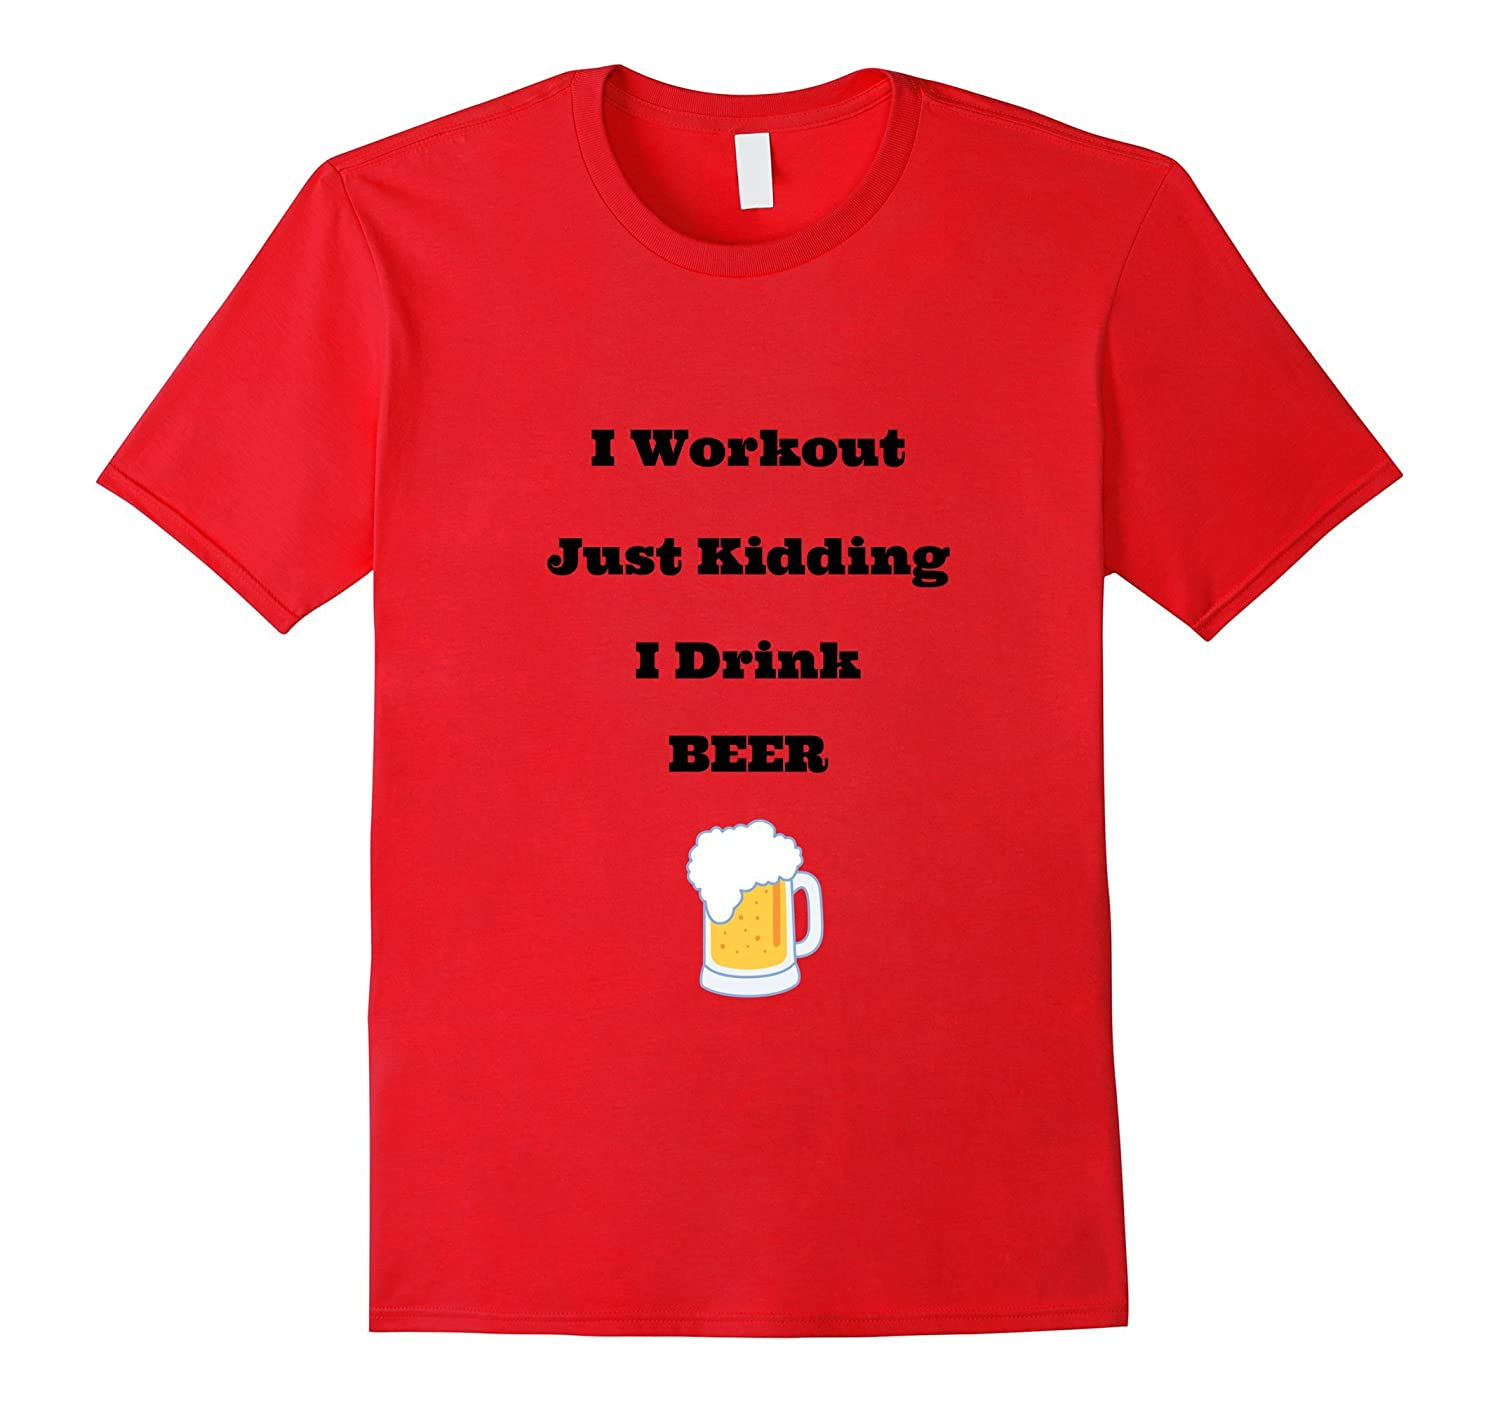 Beer Drinking Tshirt I Workout Just Kidding I Drink Beer-Vaci